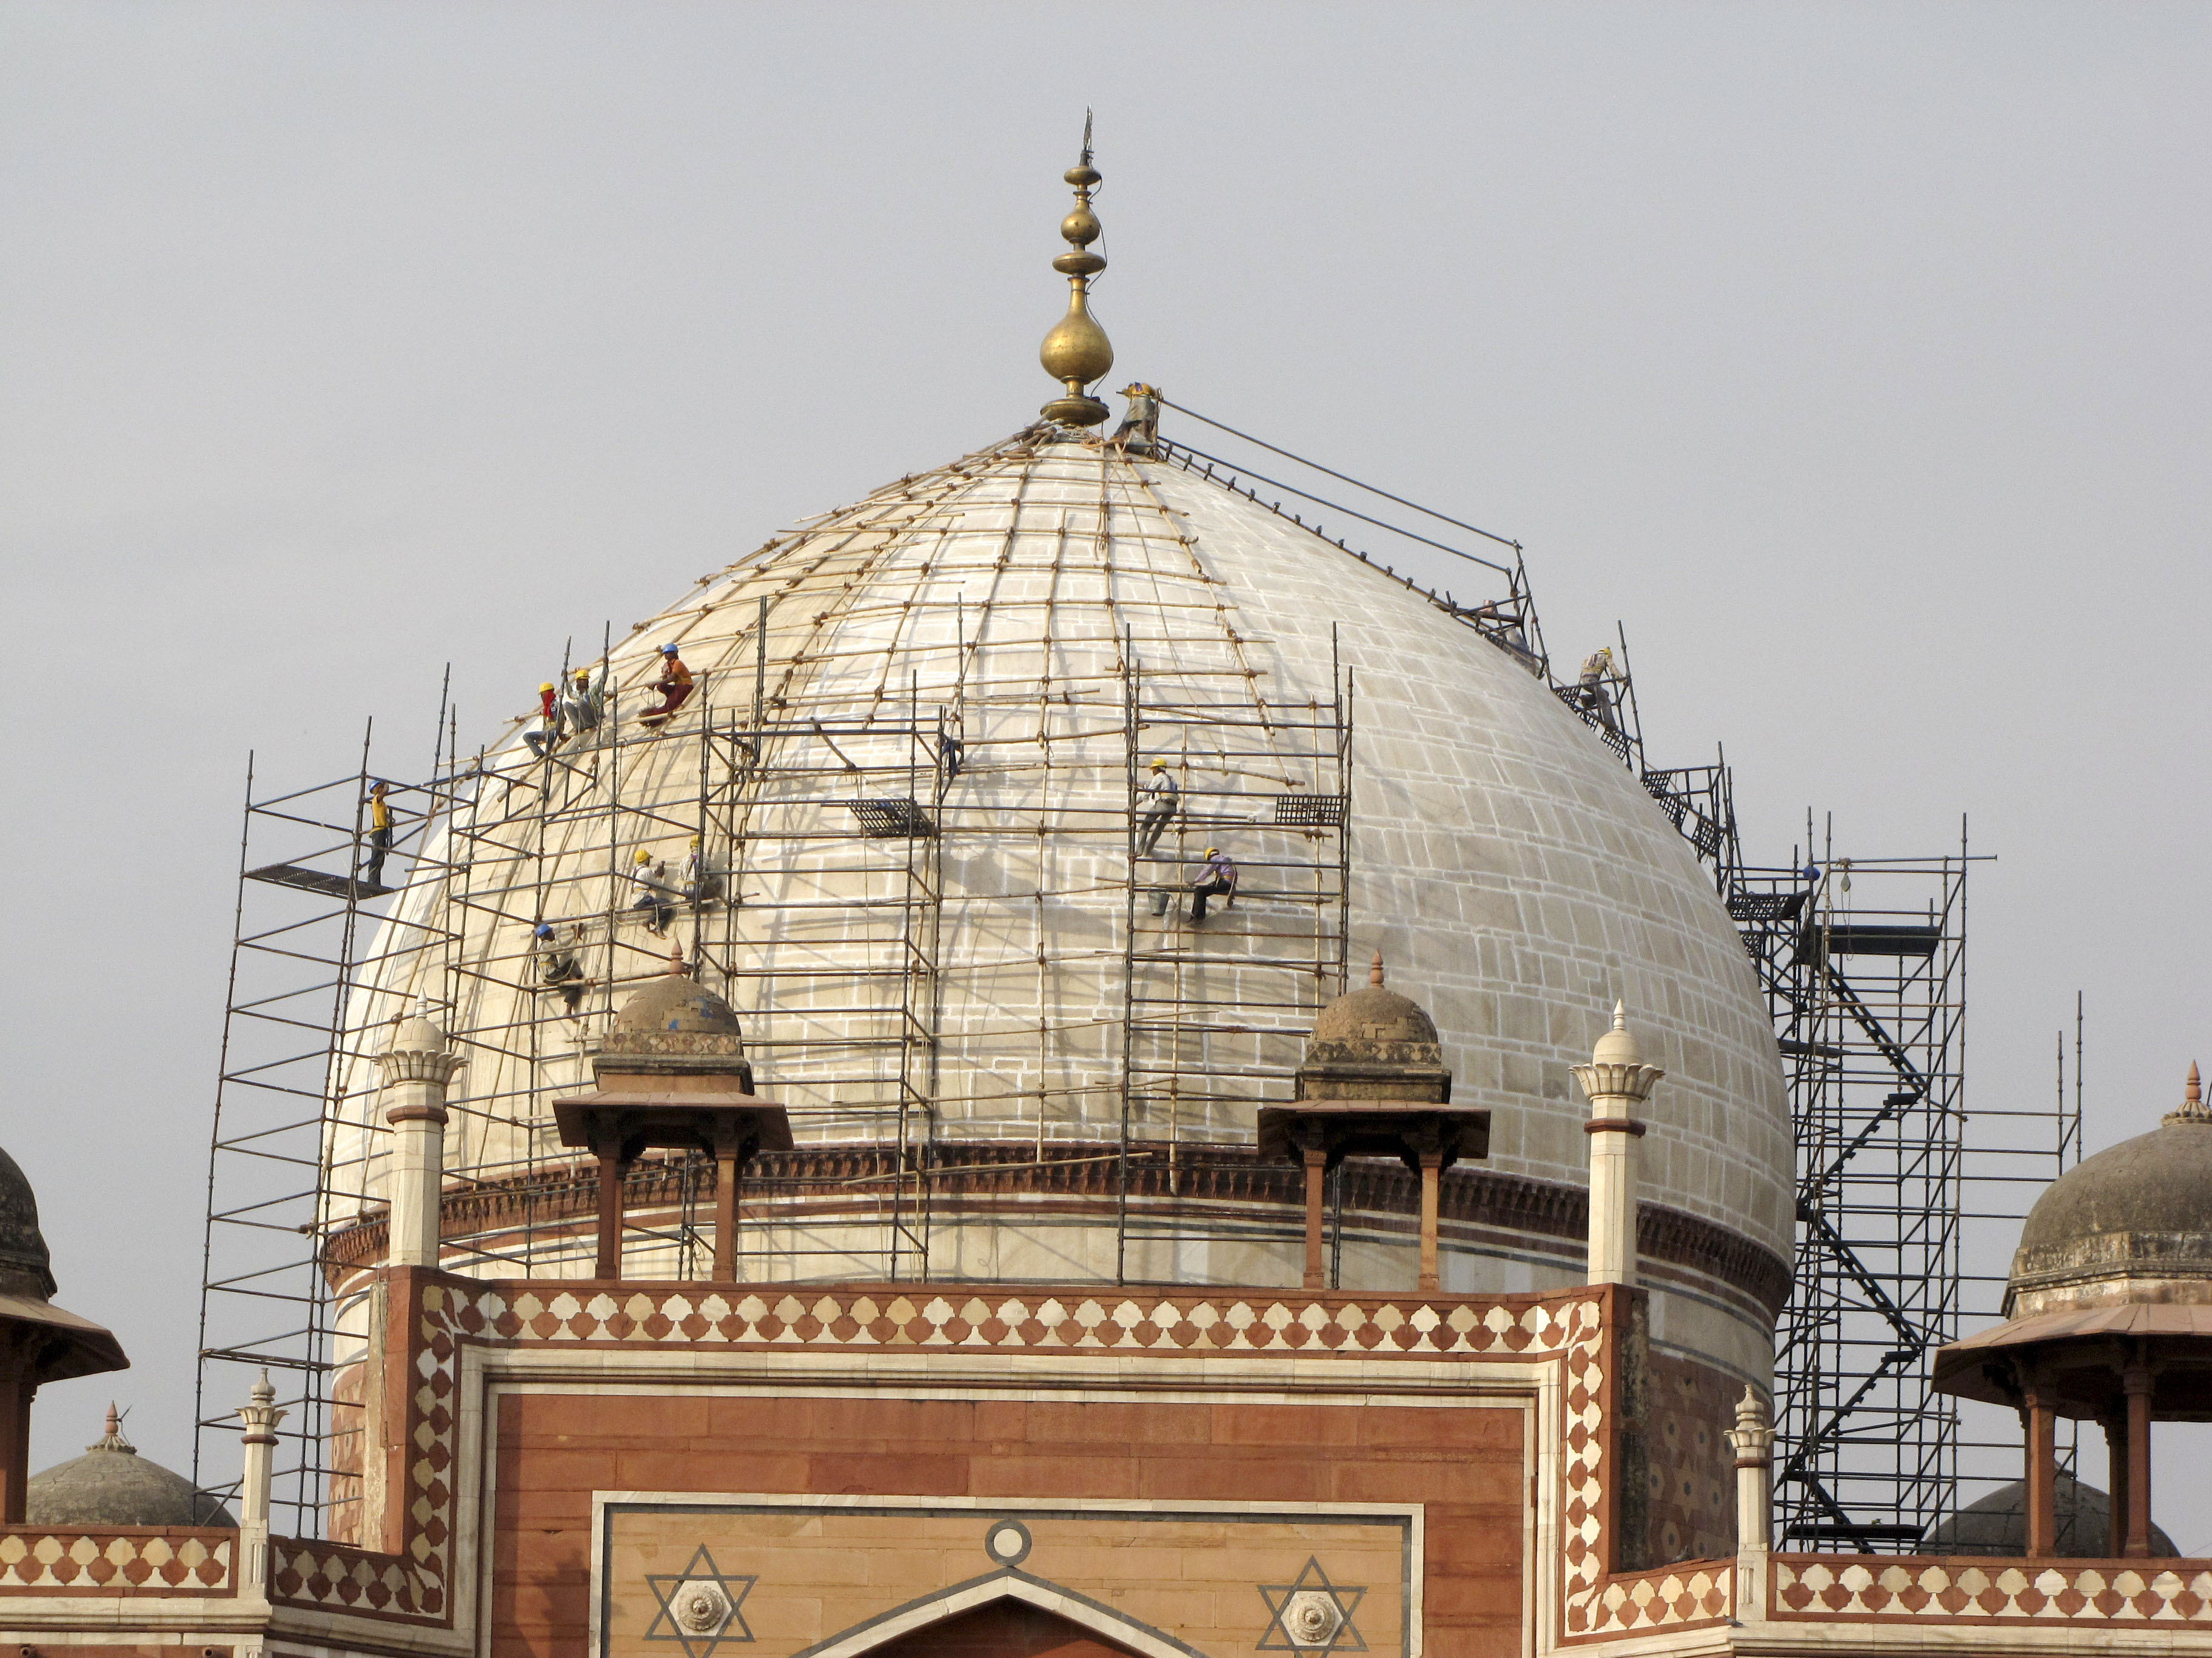 More than 600 workmen were employed in the six-year project to restore the tomb.